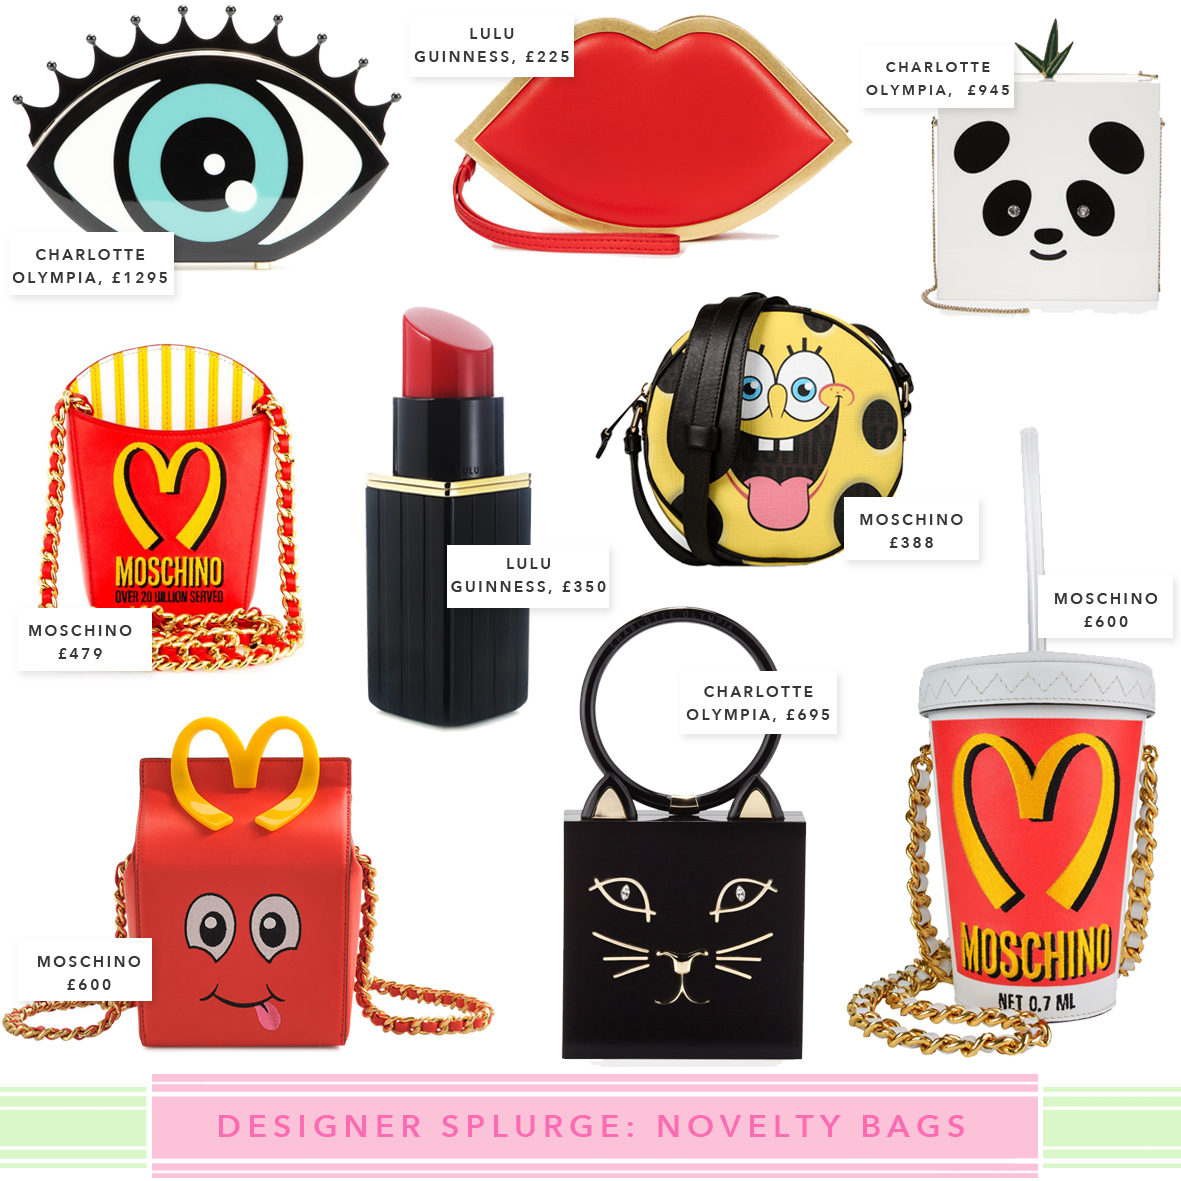 Designer Vs High Street Quirky Novelty Bags